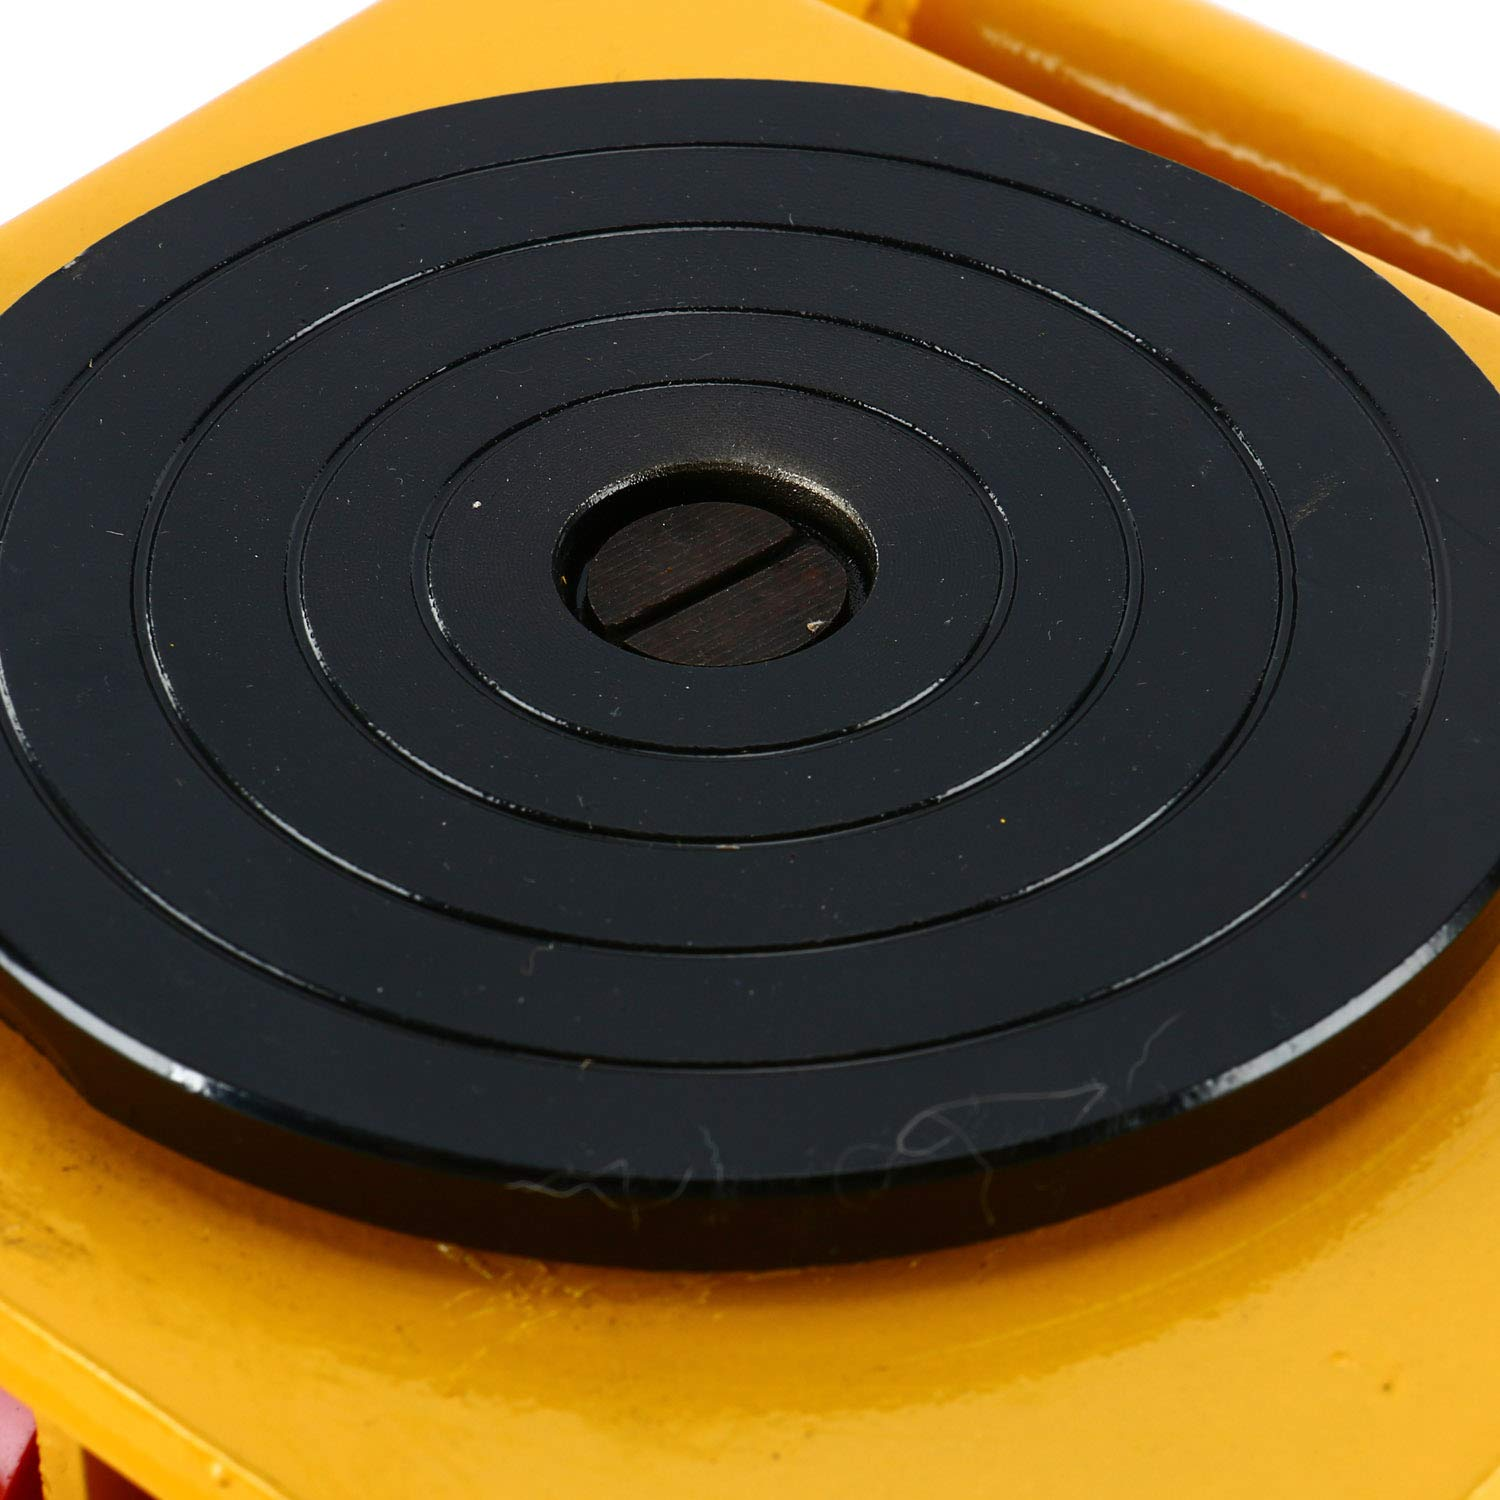 YaeTek Industrial Machinery Mover 13200 lbs 6 Tons Machinery Skate Dolly with 4 Rollers Cap 360 Degree Rotation (Yellow) by YAE TEK (Image #7)